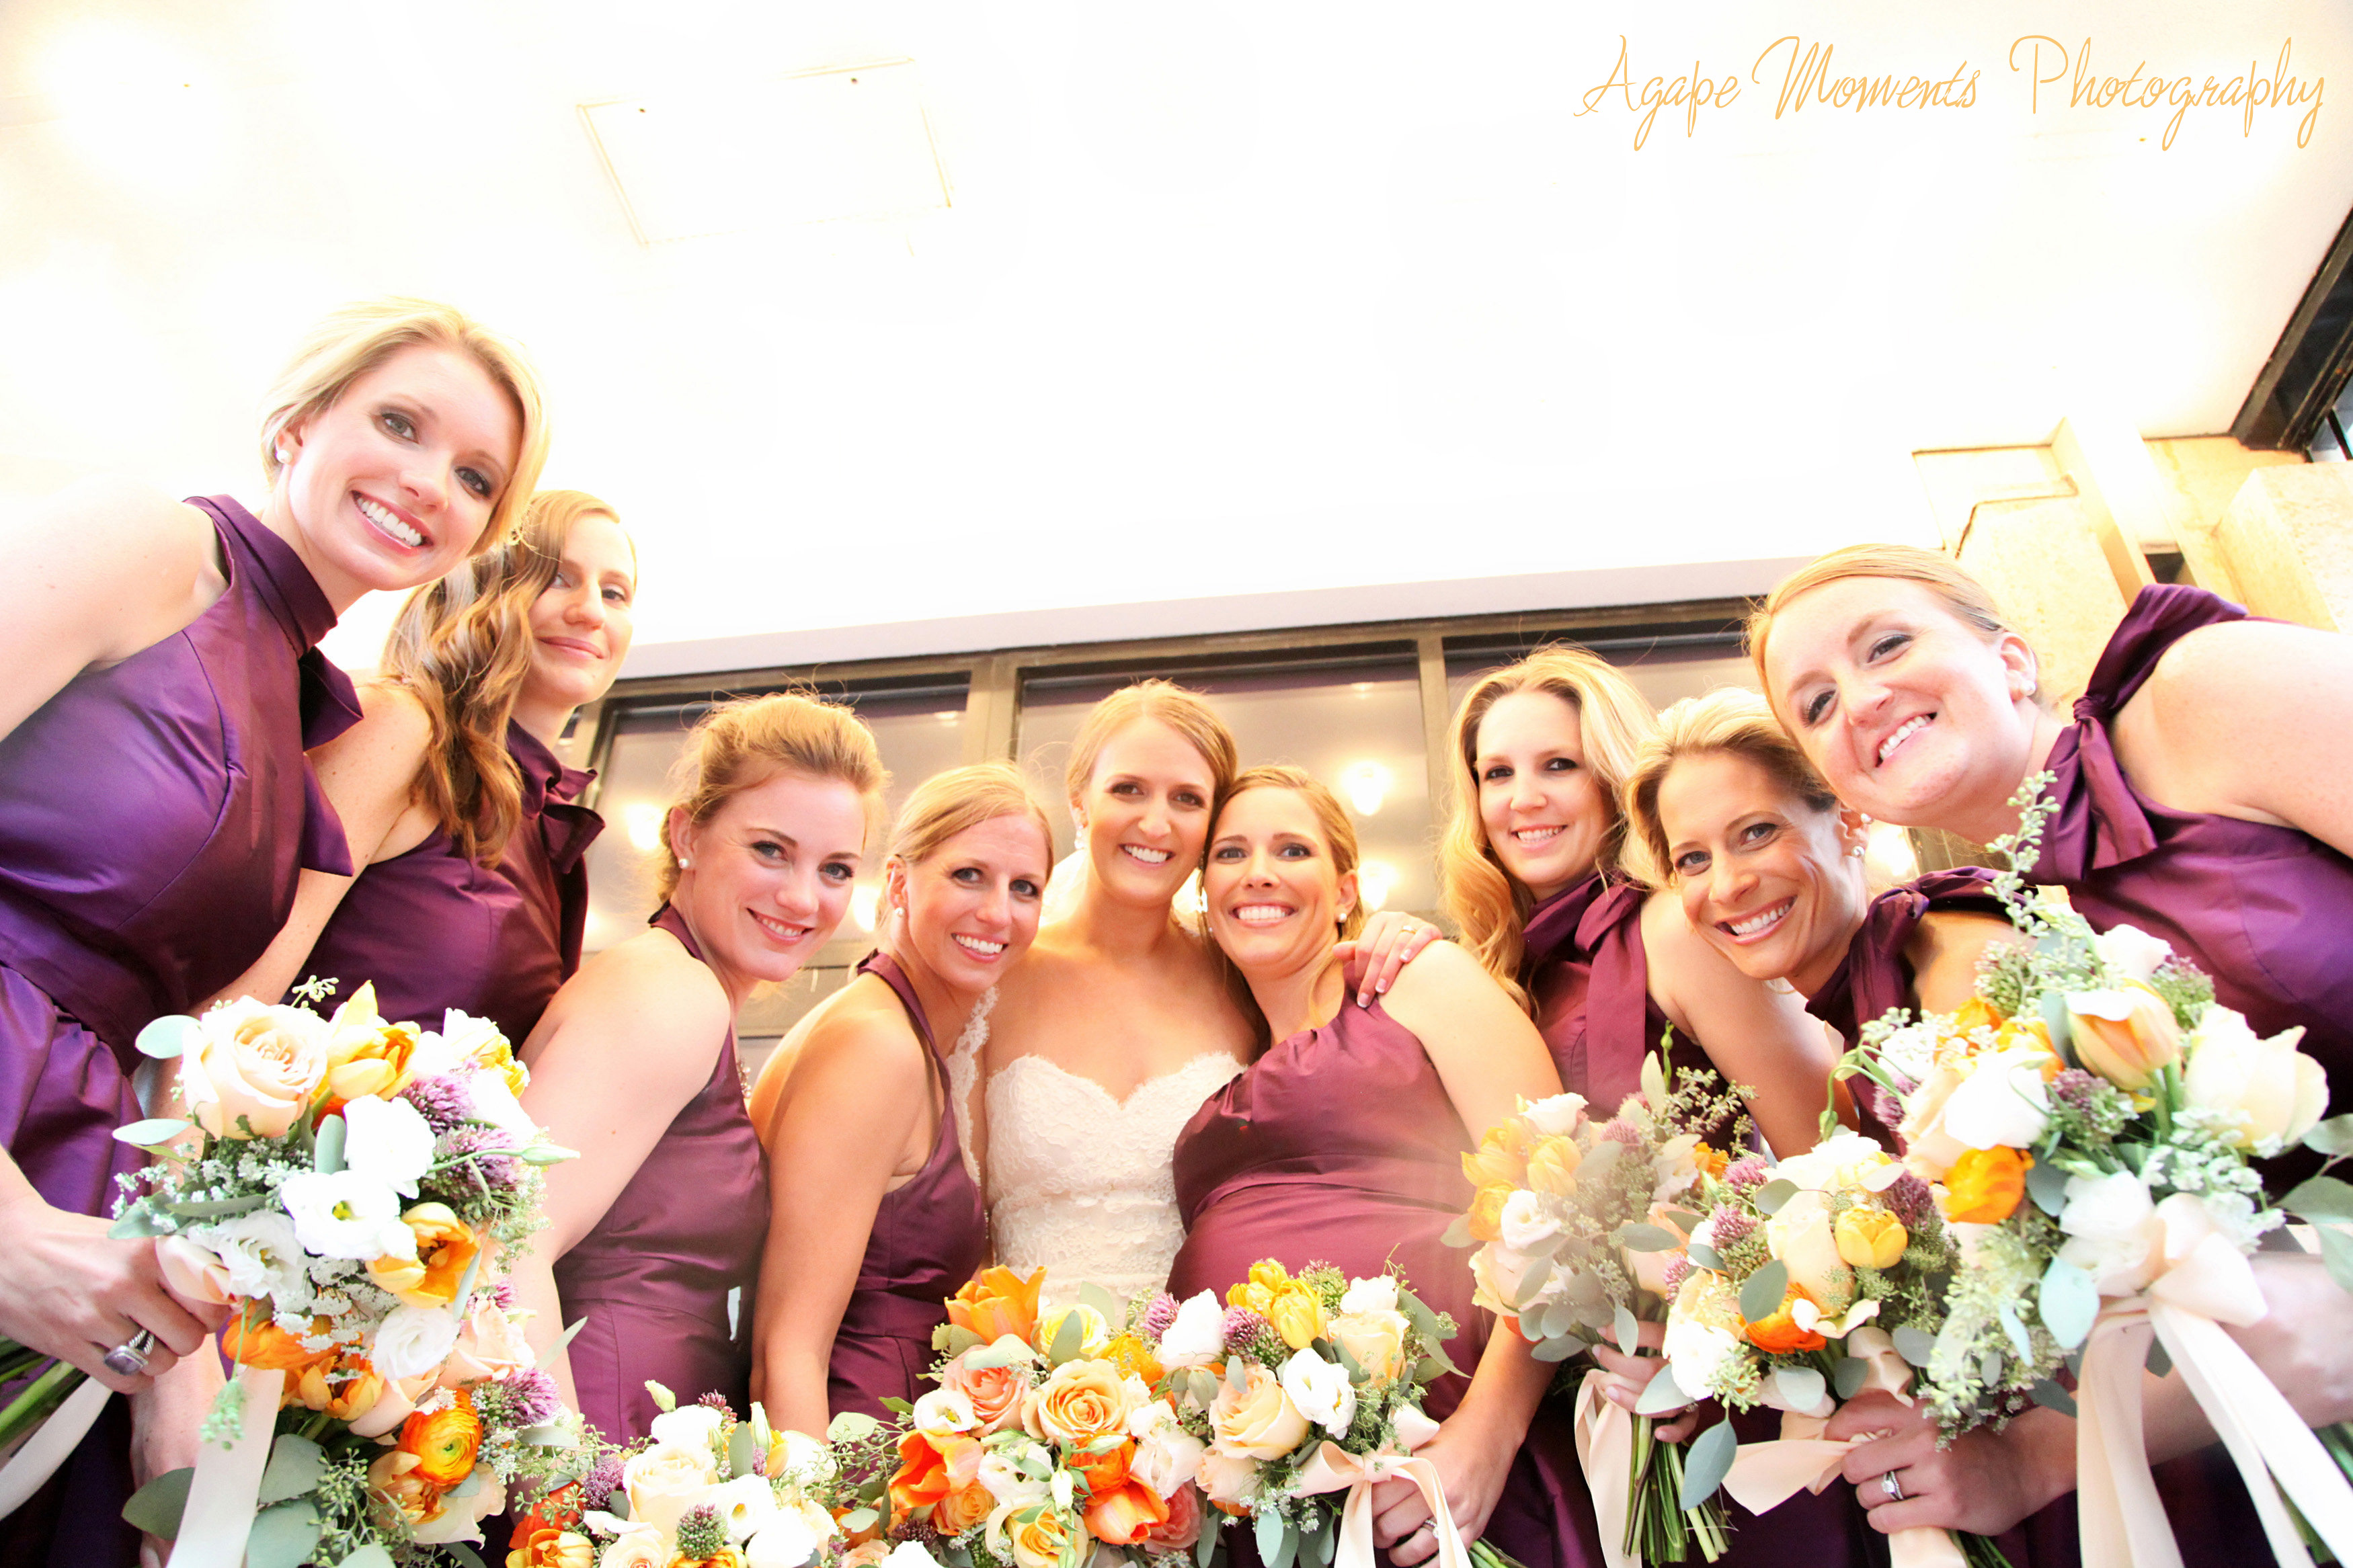 Agape Moments Photography